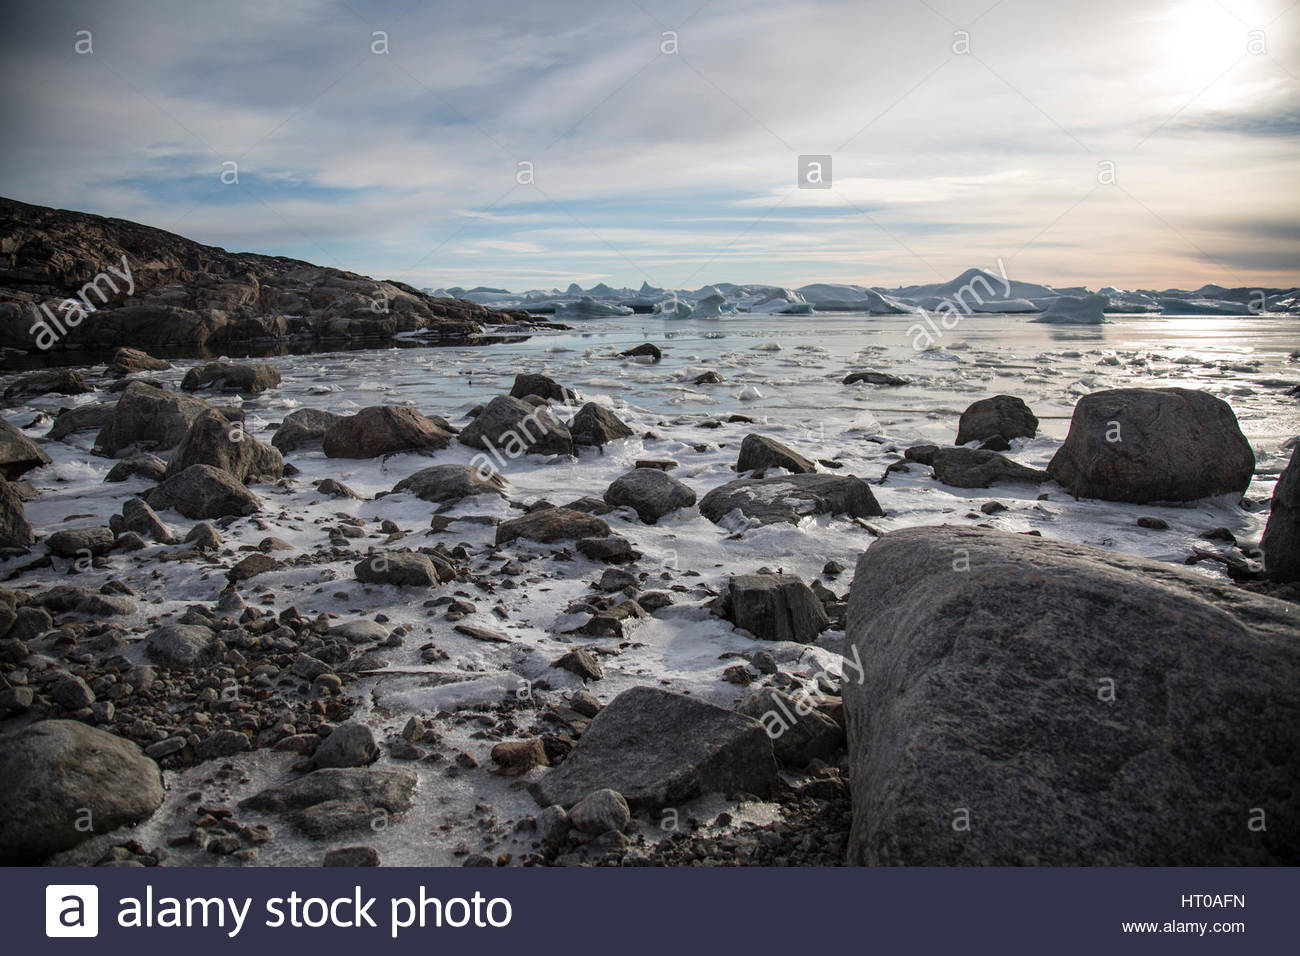 Greenland Ice fjord Beach Nearing Twighlight - Stock Image